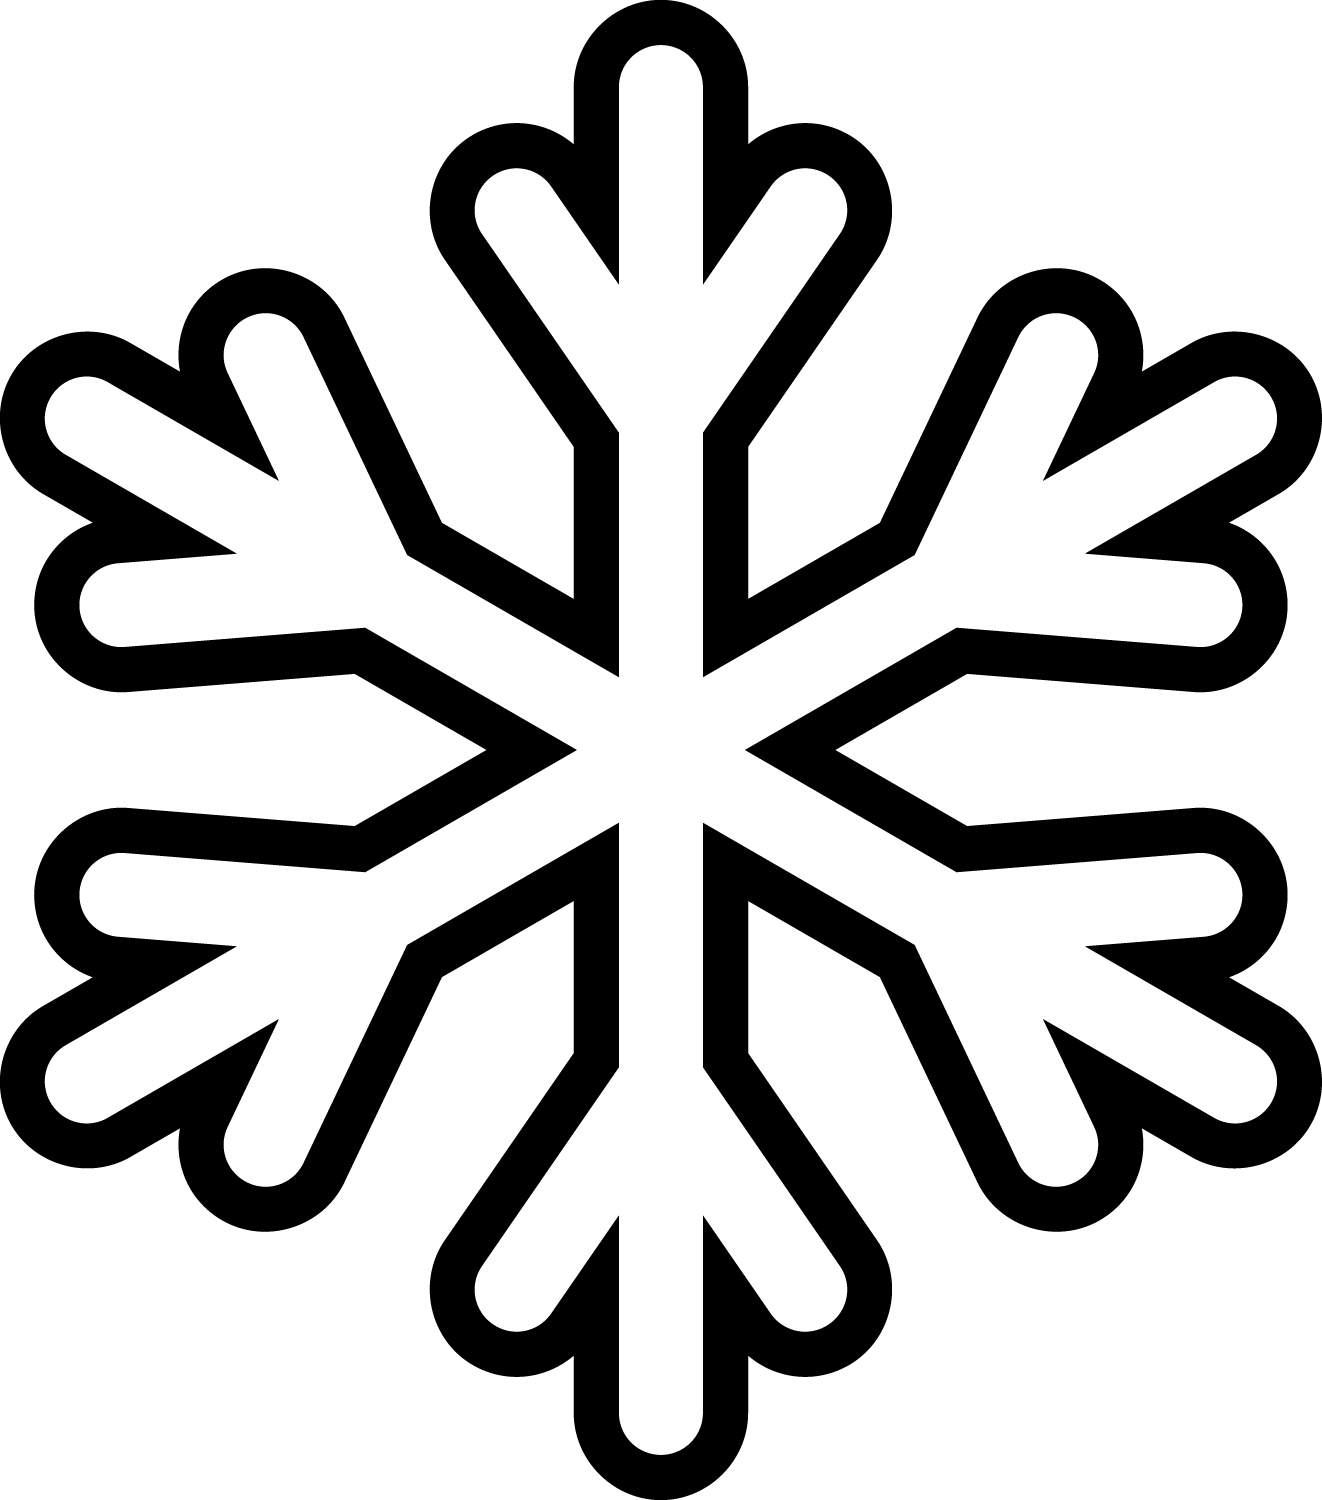 How to draw snowflake clipart picture free stock 28+ Collection of Snowflake Drawing Black And White | High quality ... picture free stock